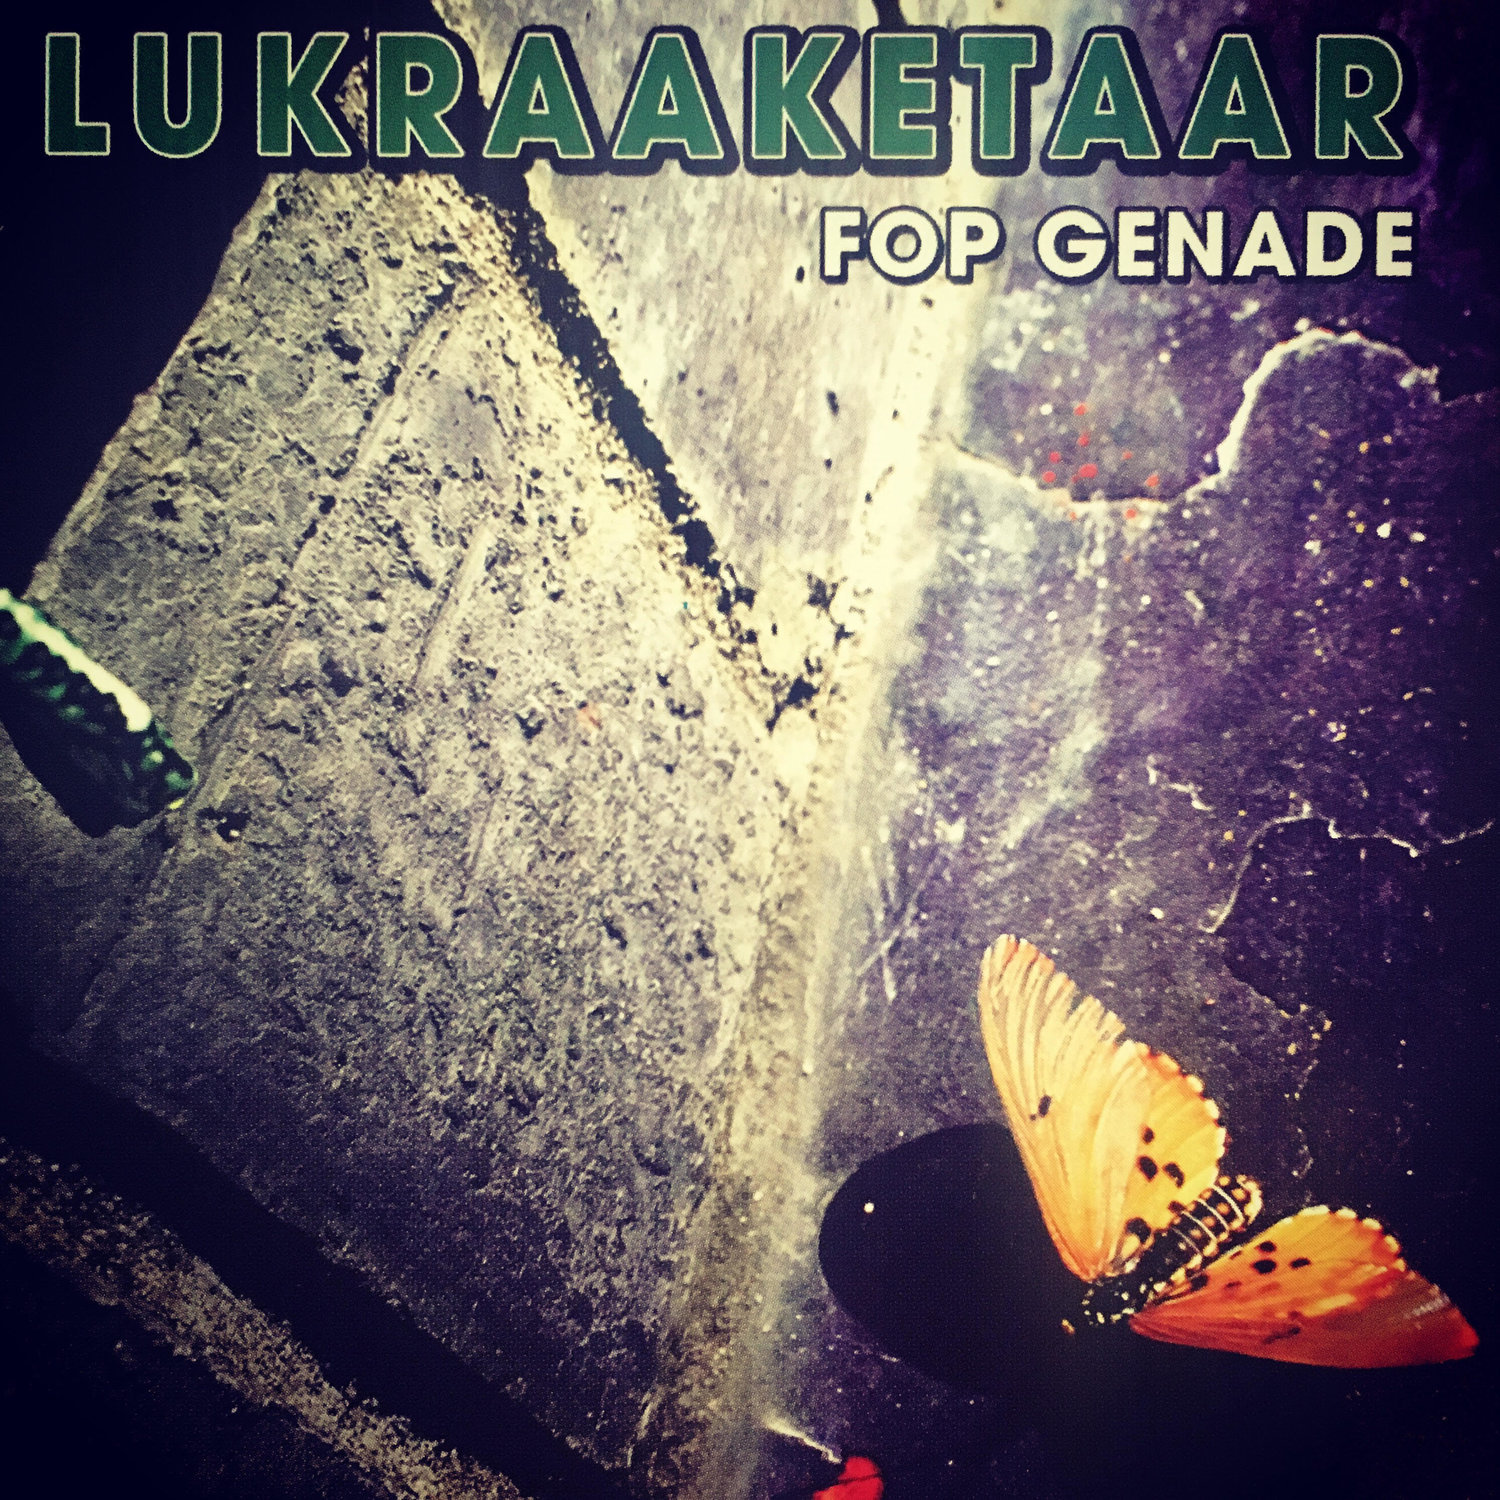 Signed LUKRAAKETAAR Fop Genade Acoustic EP CD | + 2 NEW digital singles!